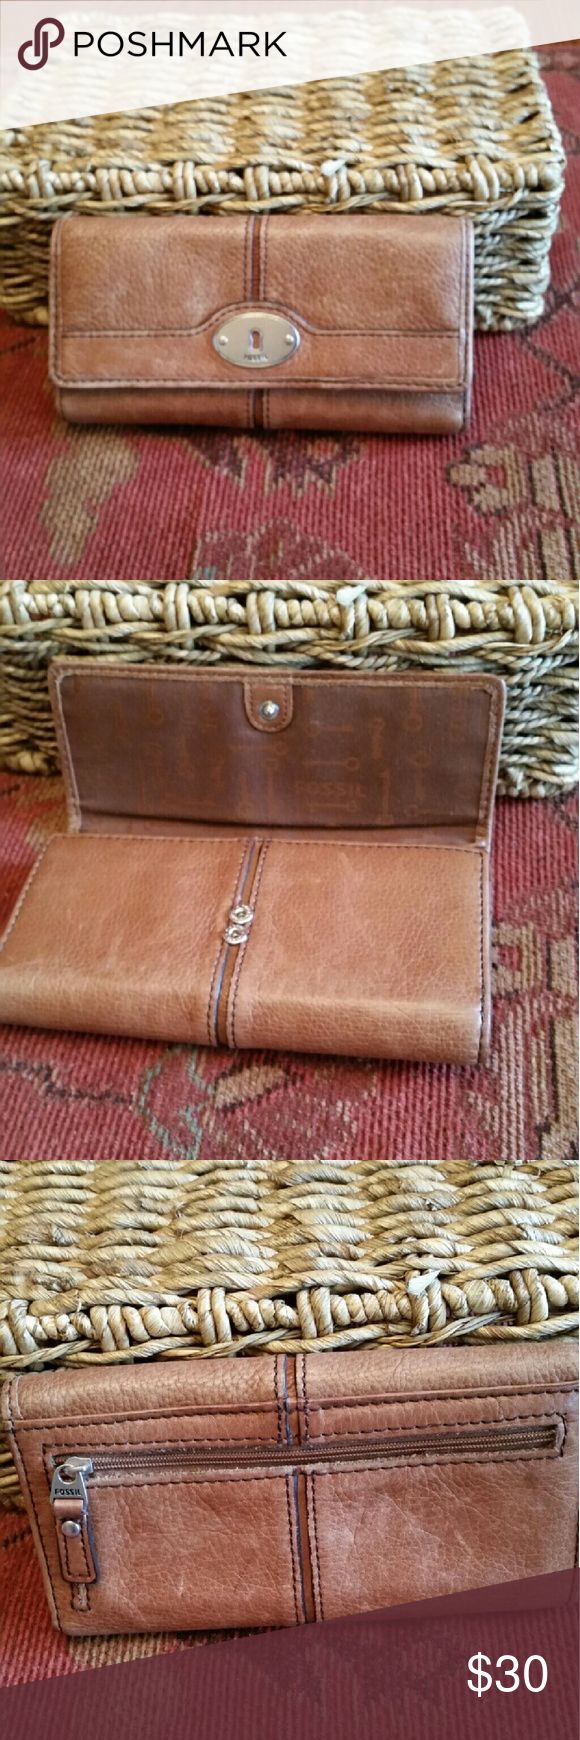 Womens Fossil Brown Leather Wallet Soft light brown leather wallet in VGC Fossil Bags Wallets